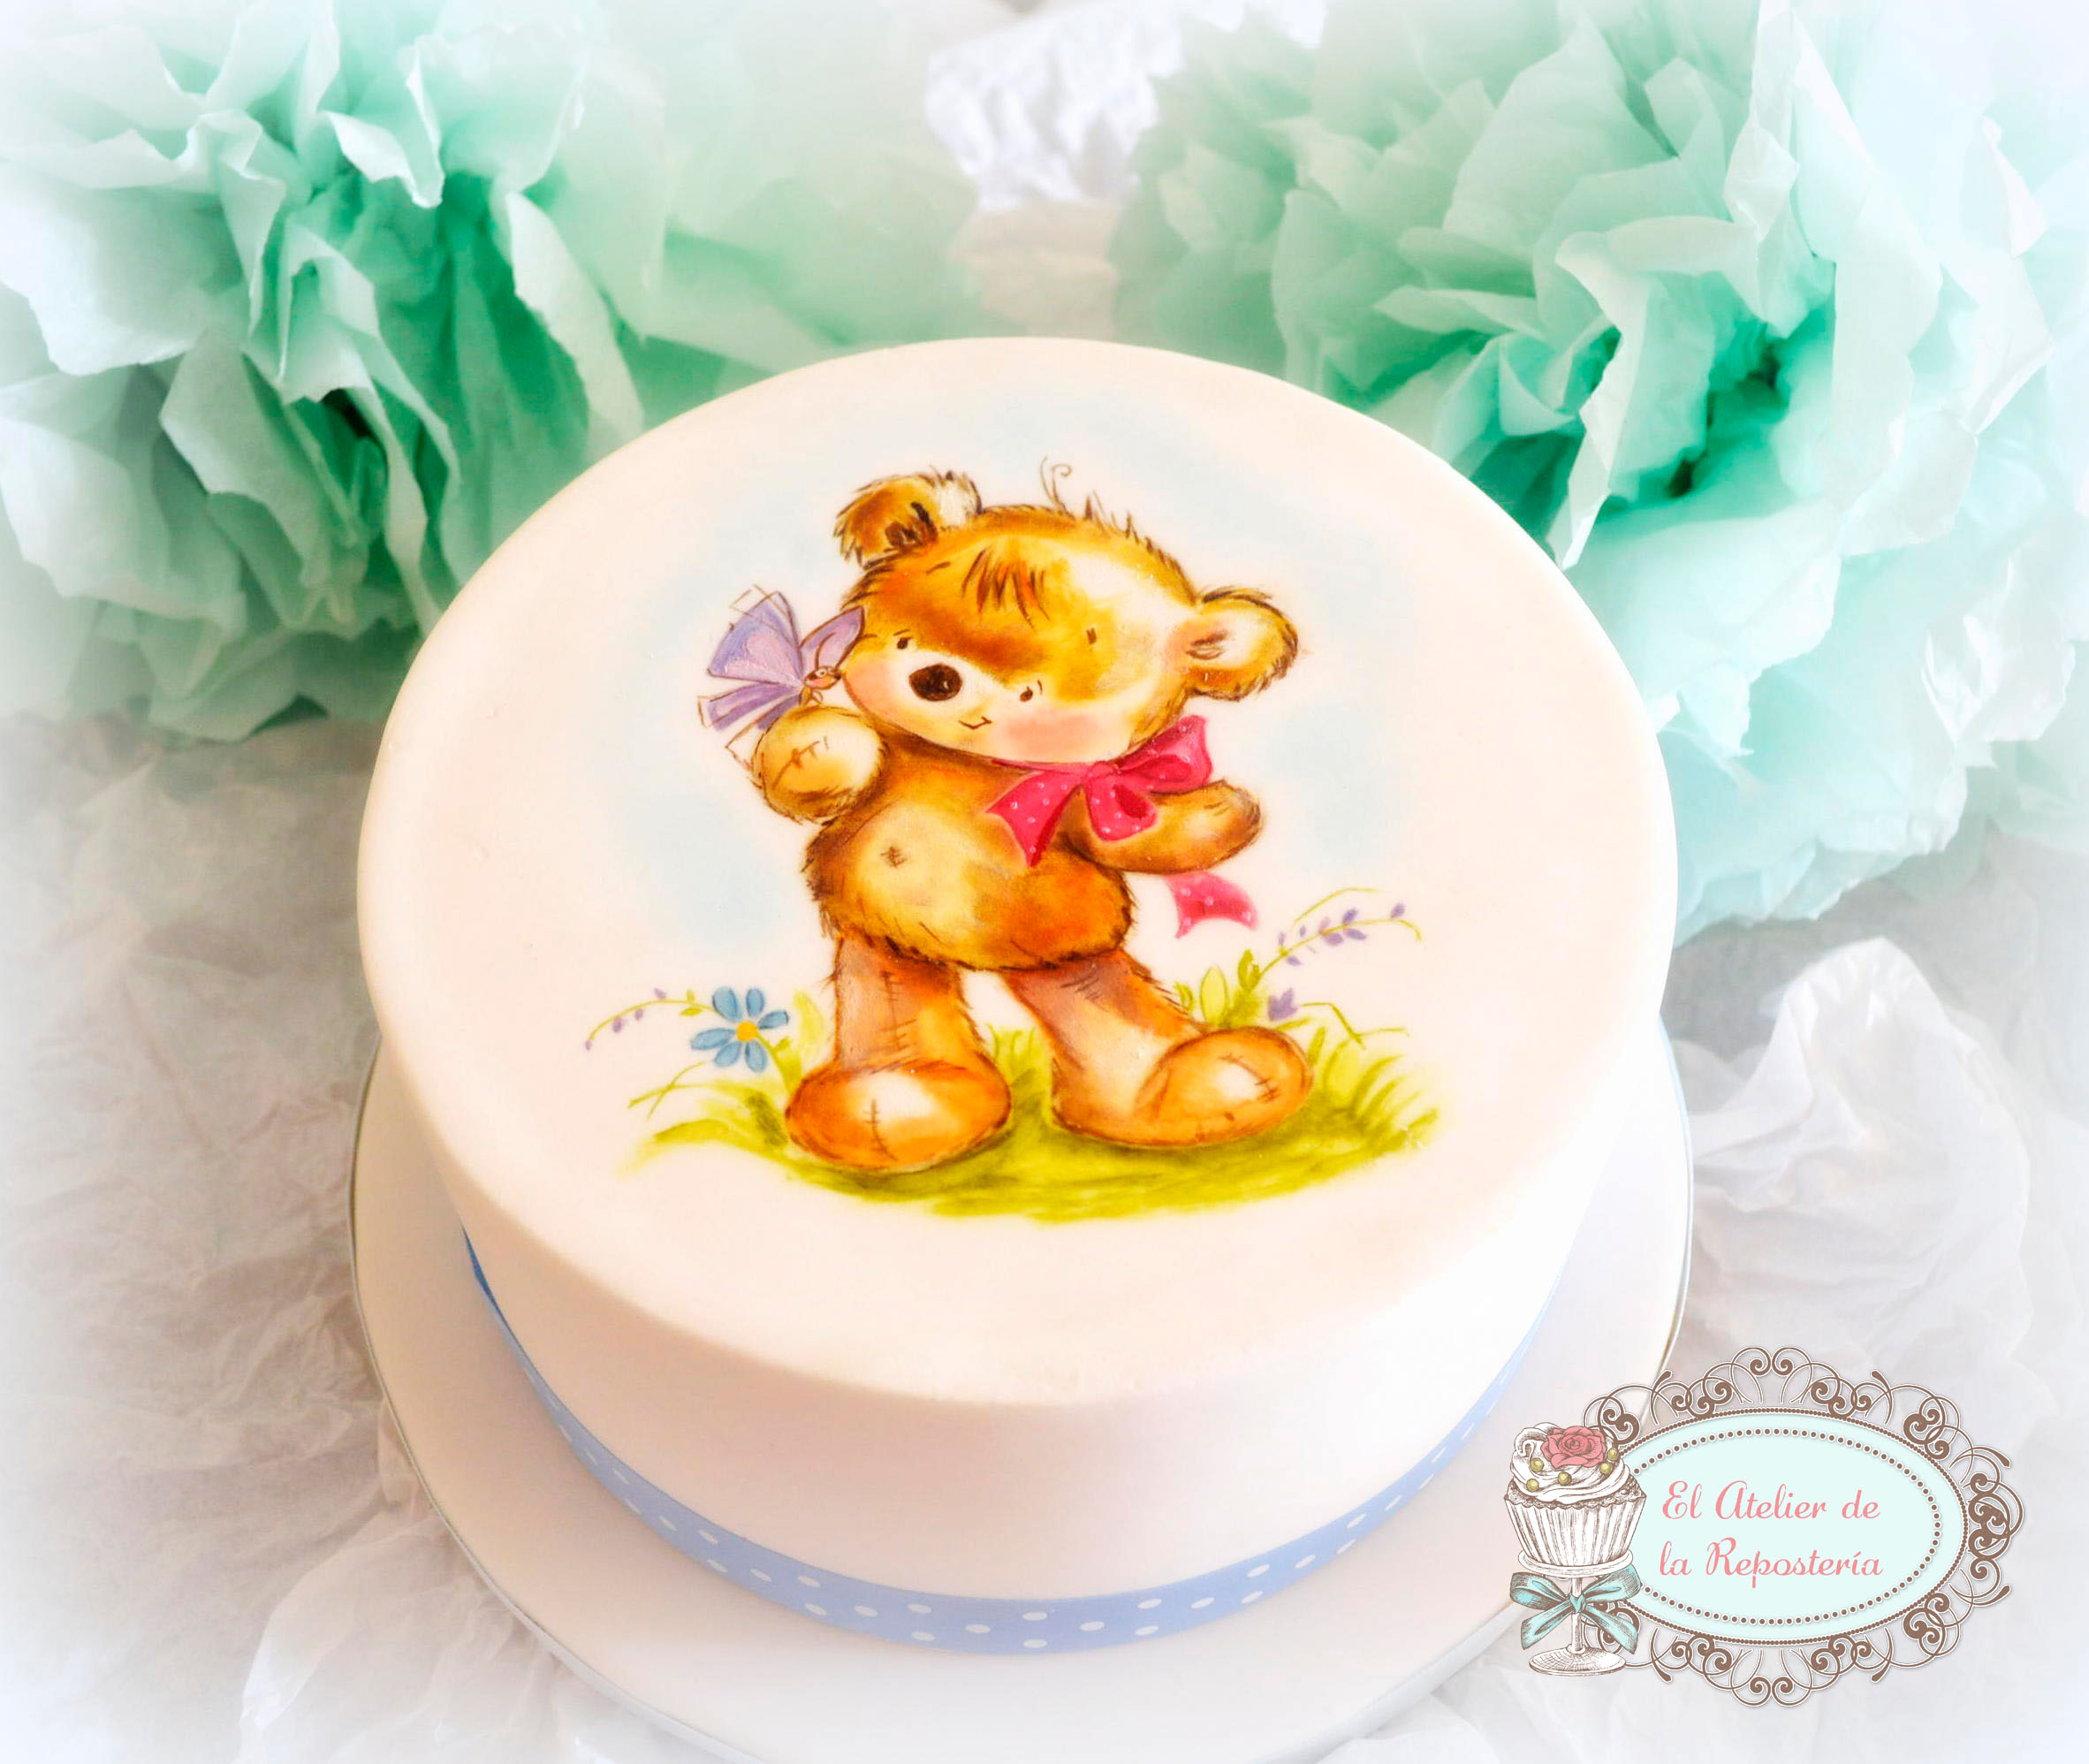 Hand  painted teddy bear baby cake